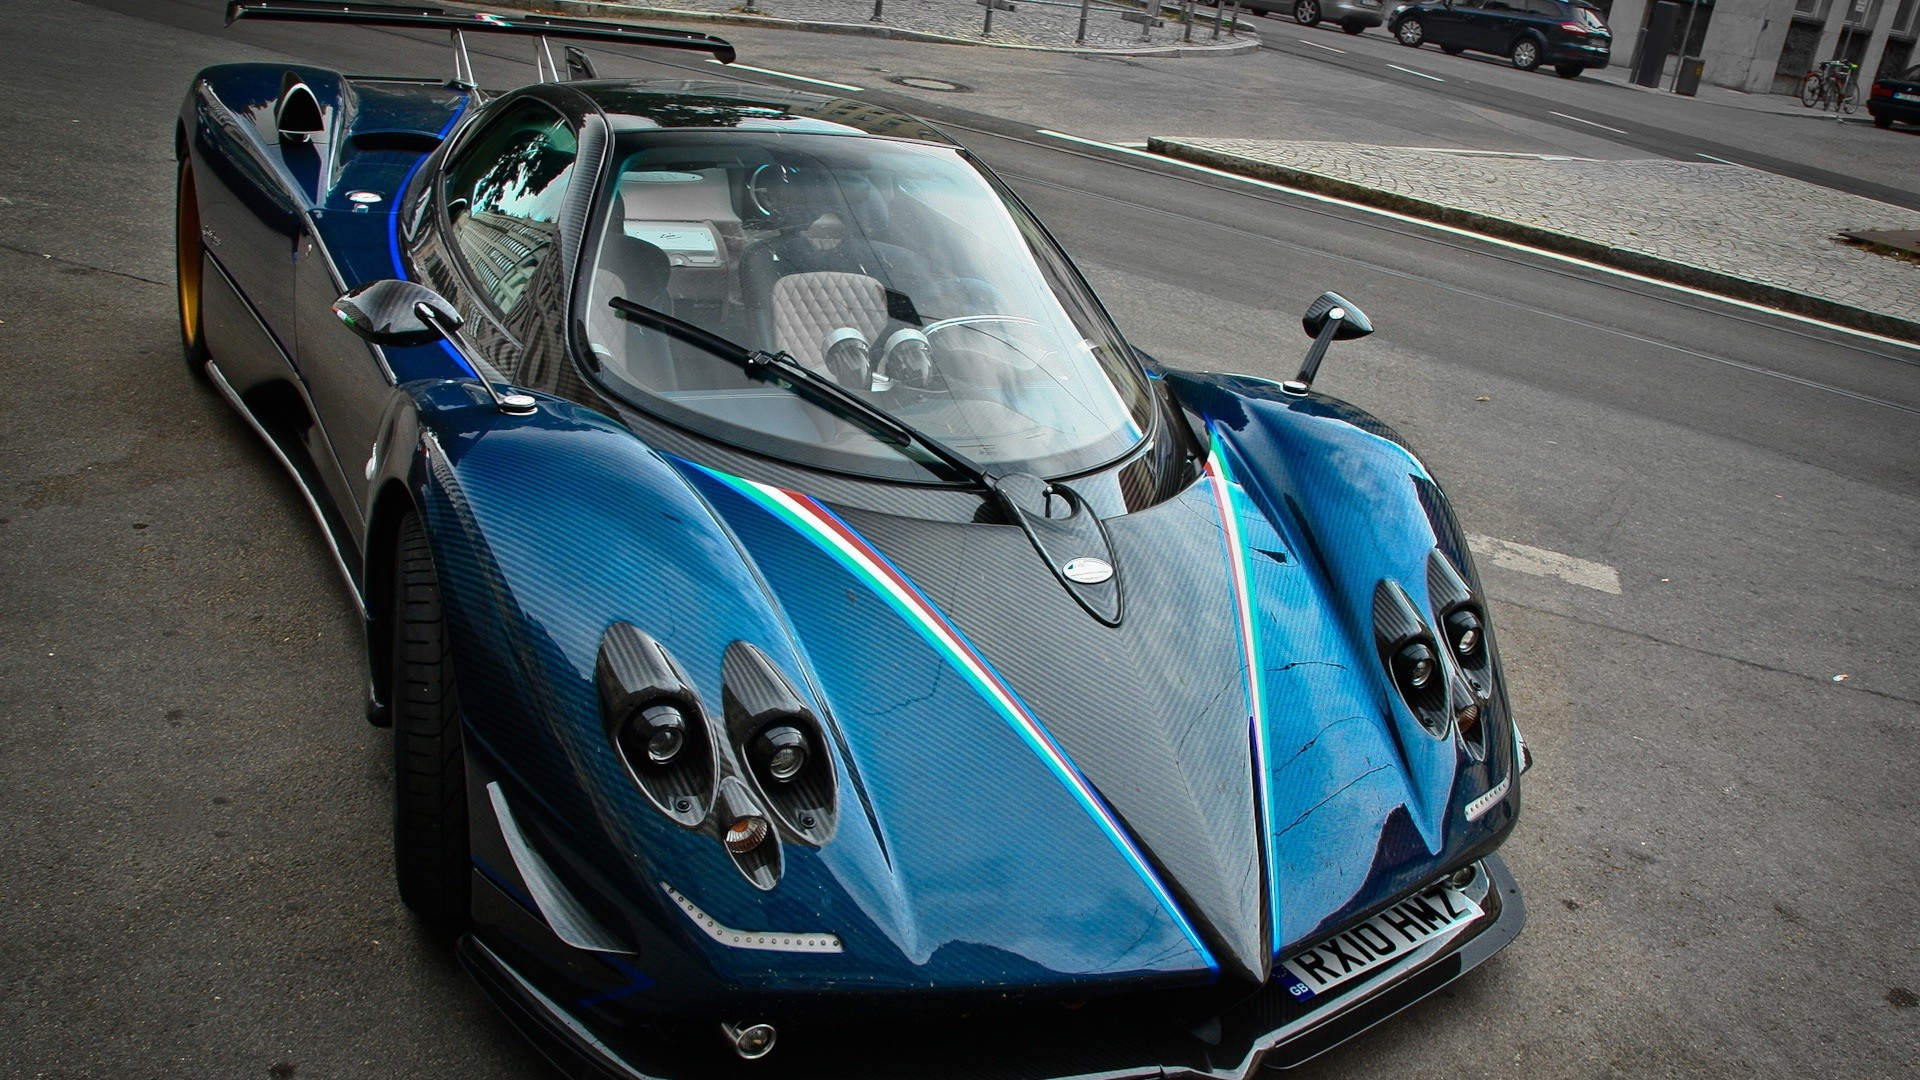 pagani-zonda-tricolori-sports-car-1920x1080